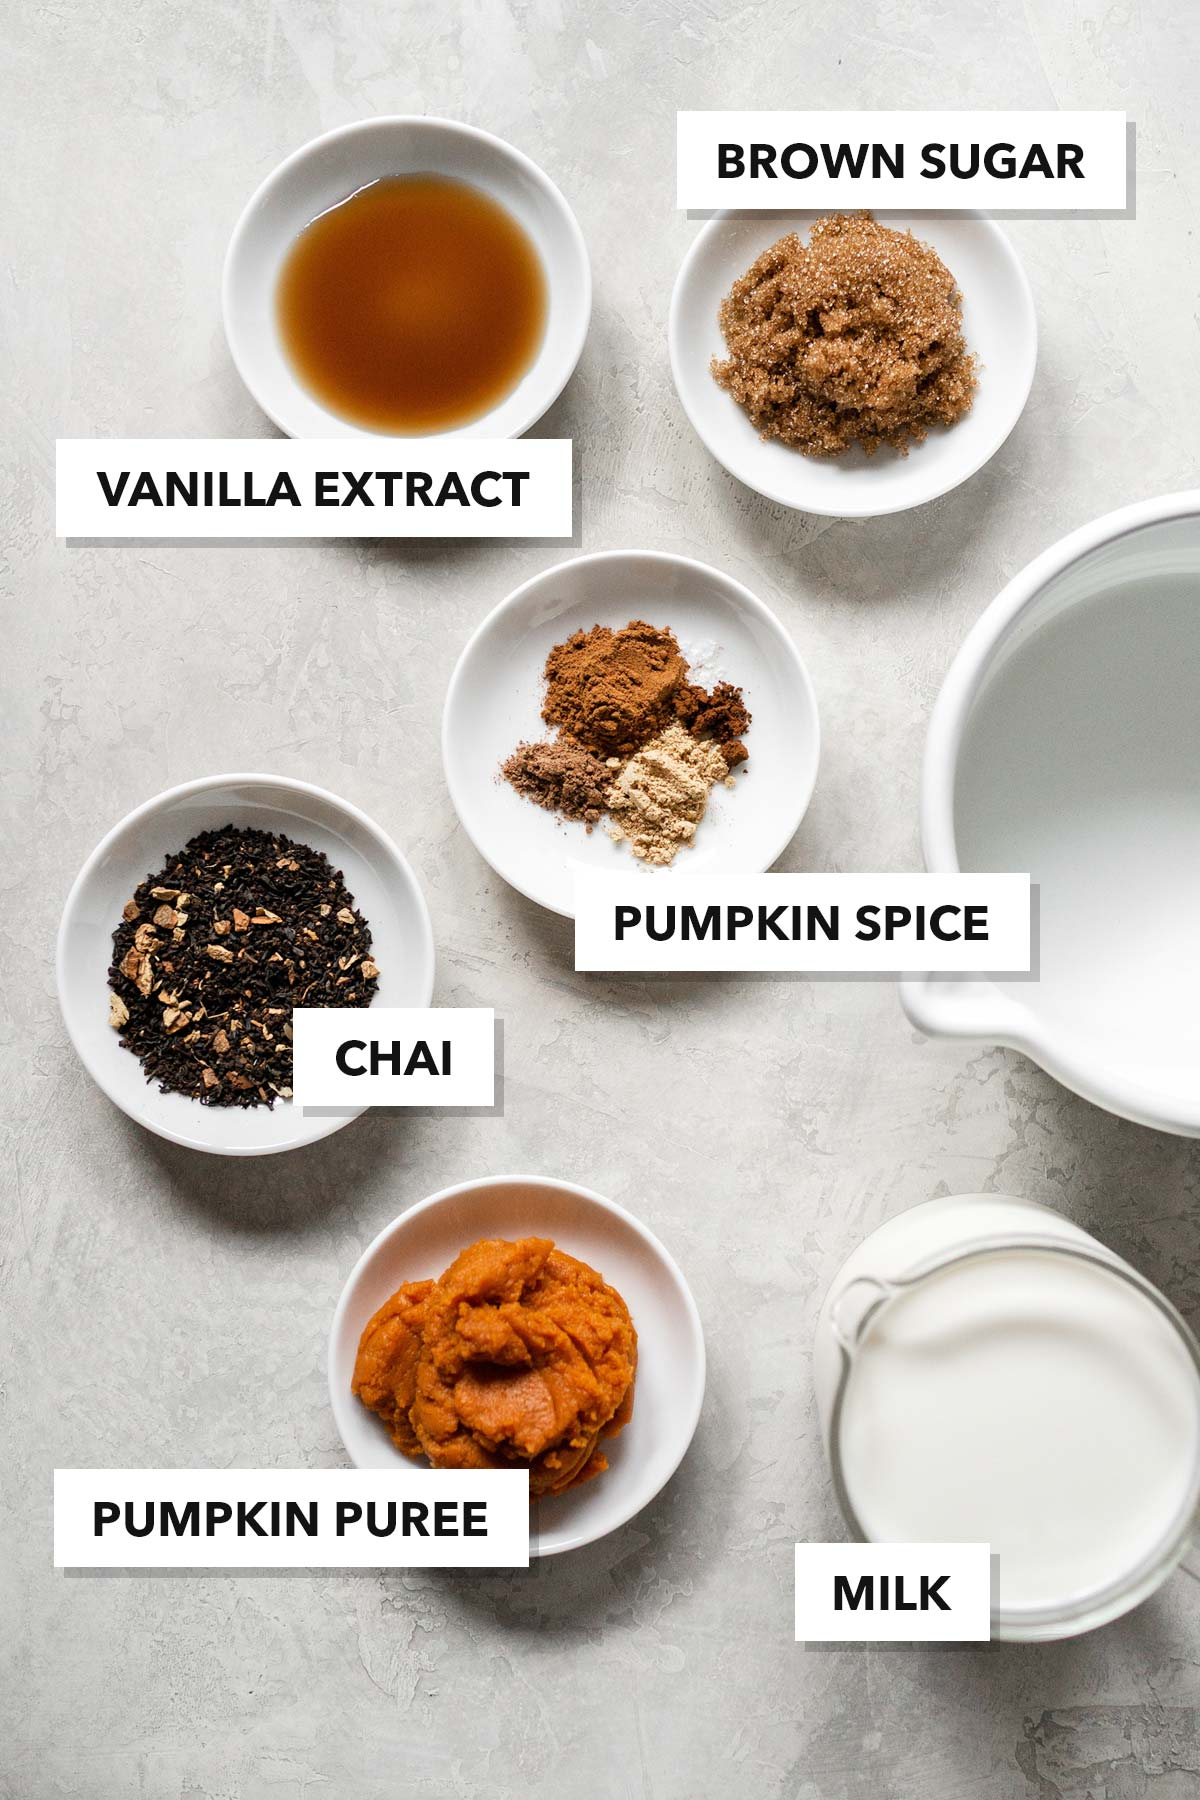 Pumpkin spice chai latte ingredients.